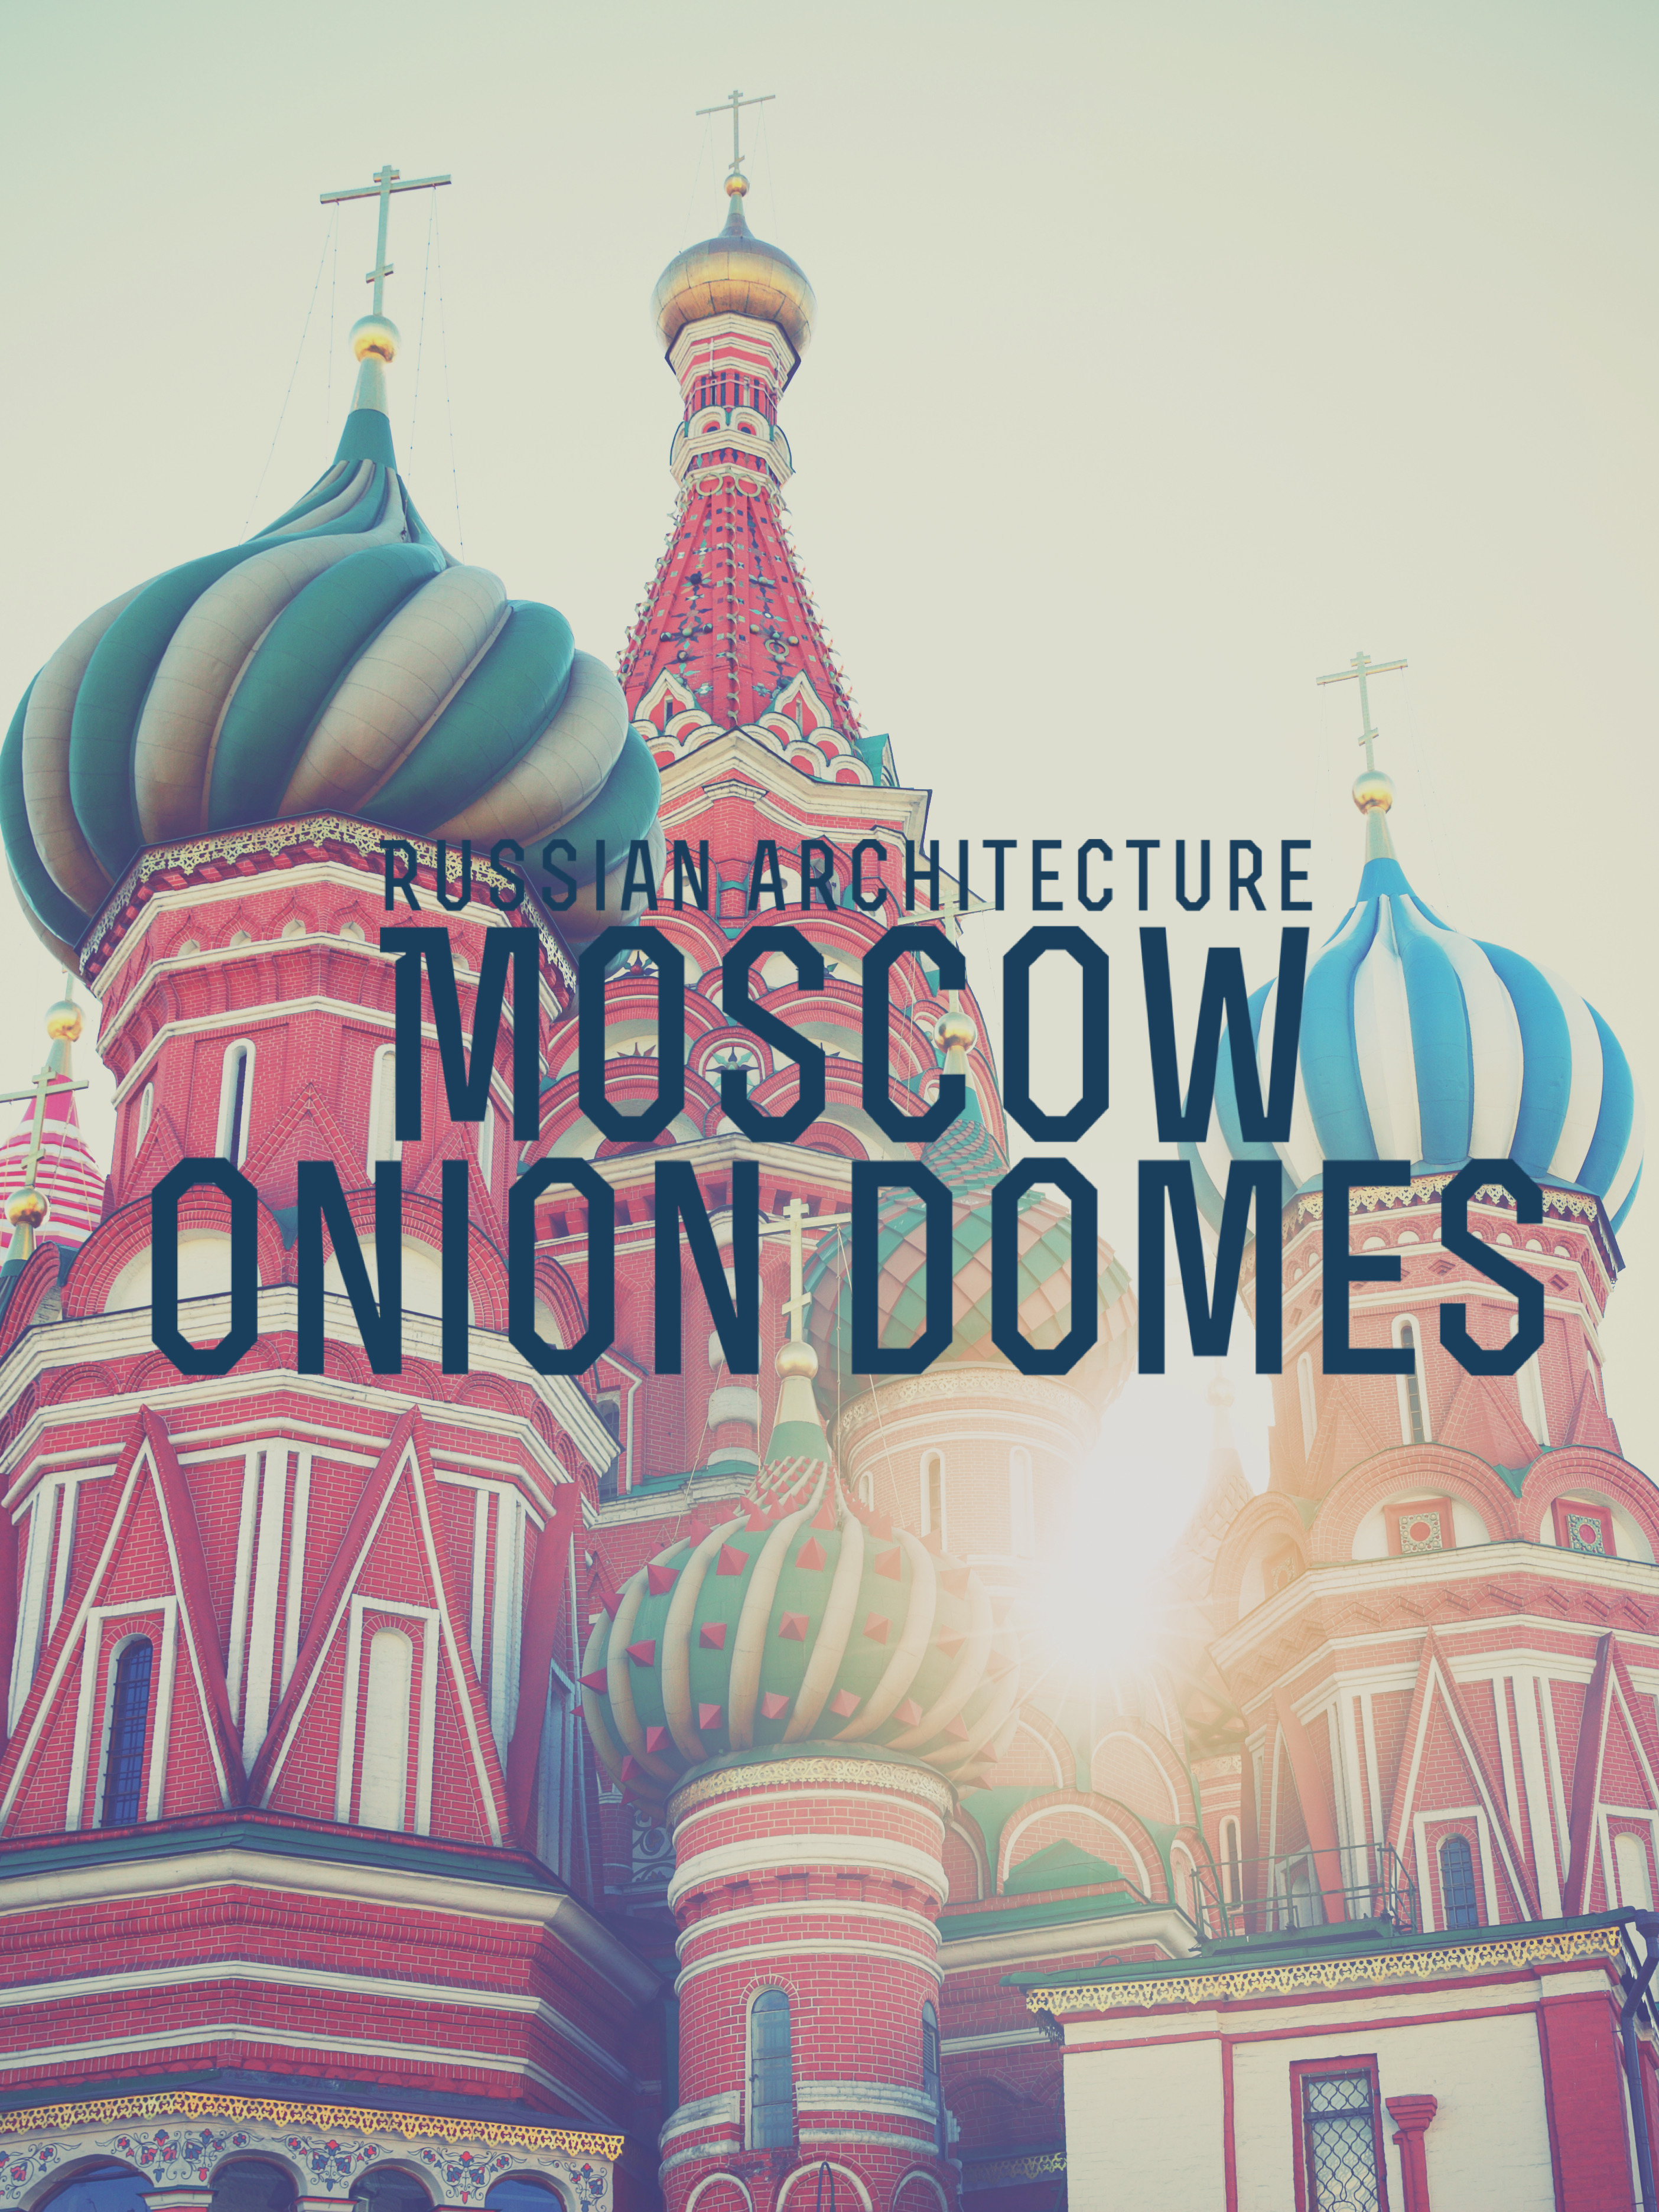 Moscow! Onion Domes!